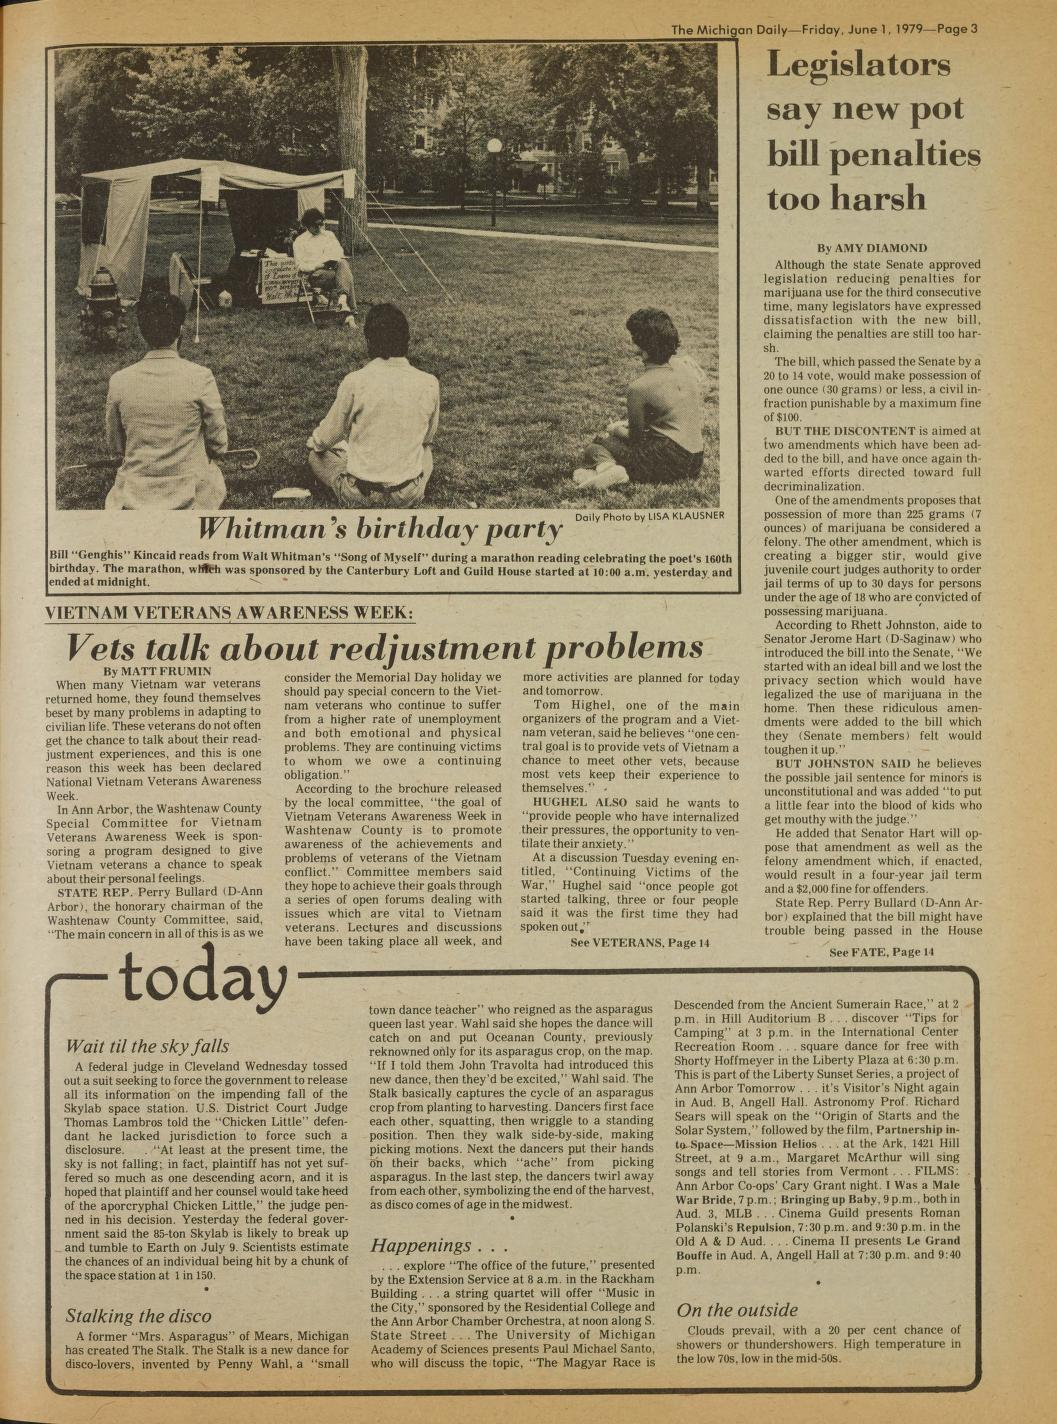 Michigan Daily Digital Archives - June 01, 1979 (vol  89